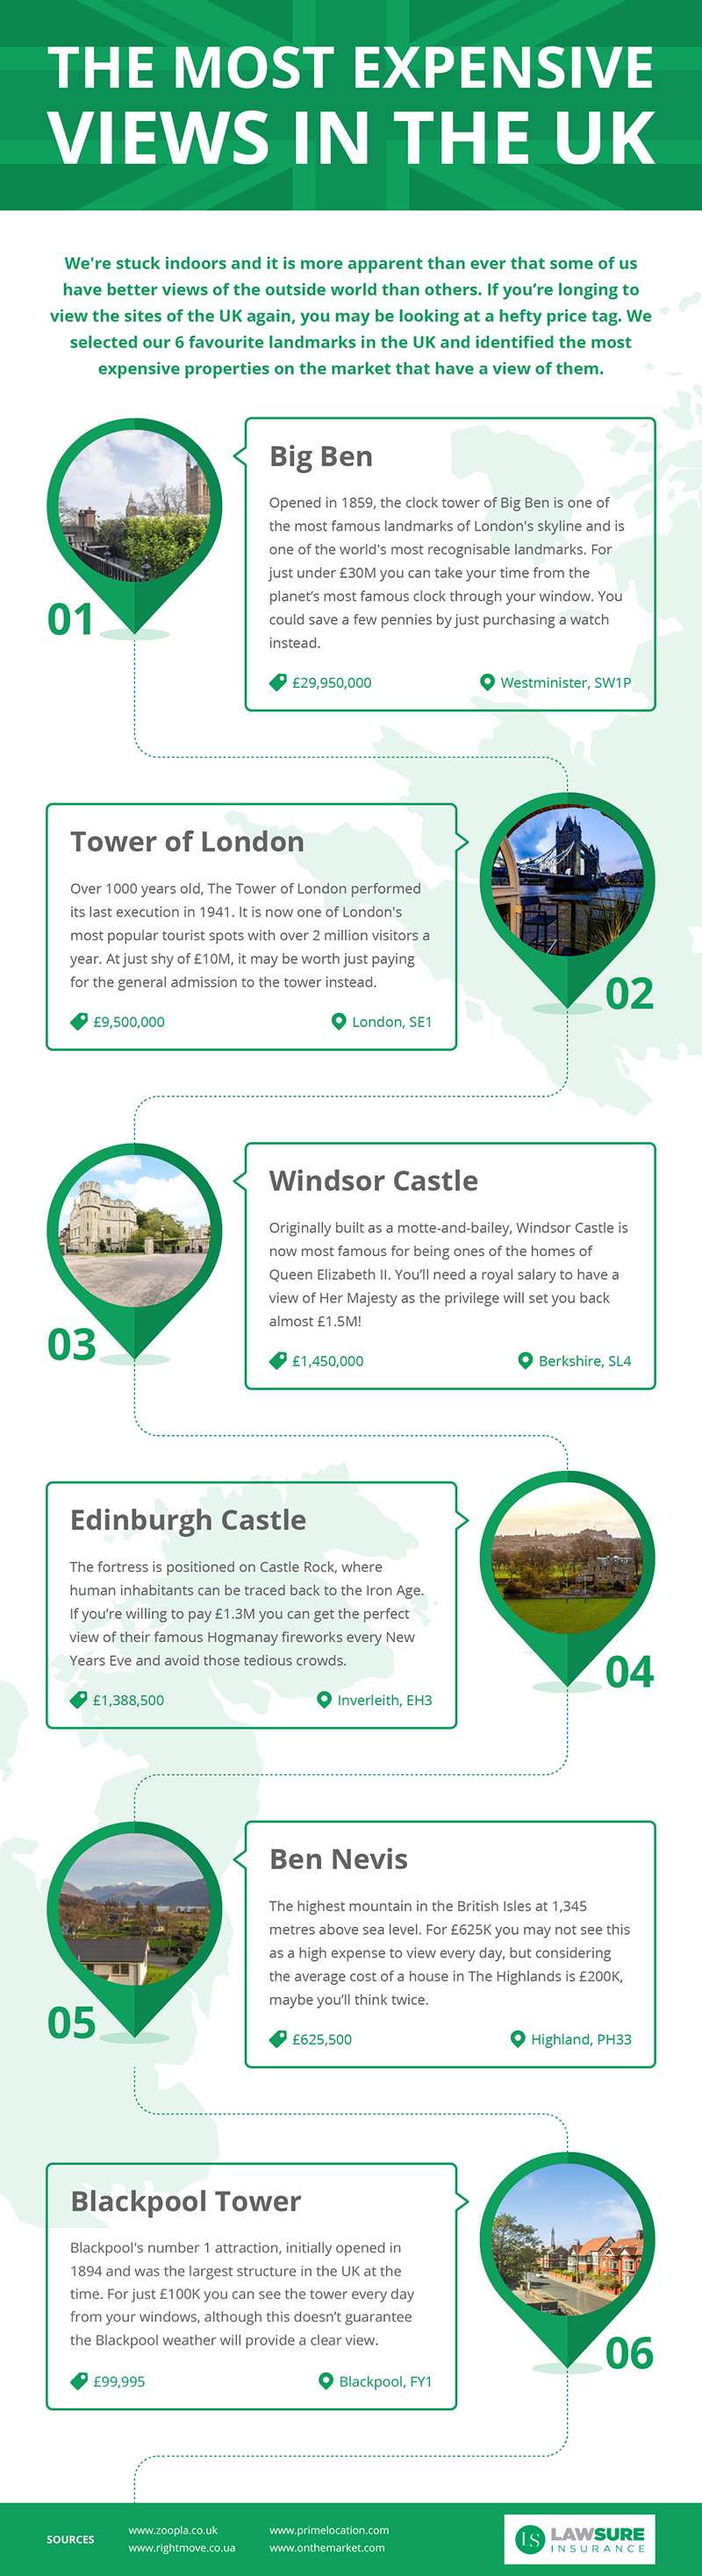 The Ultimate Cost of Saving to Live Near the UK's Most Expensive Landmarks infographic